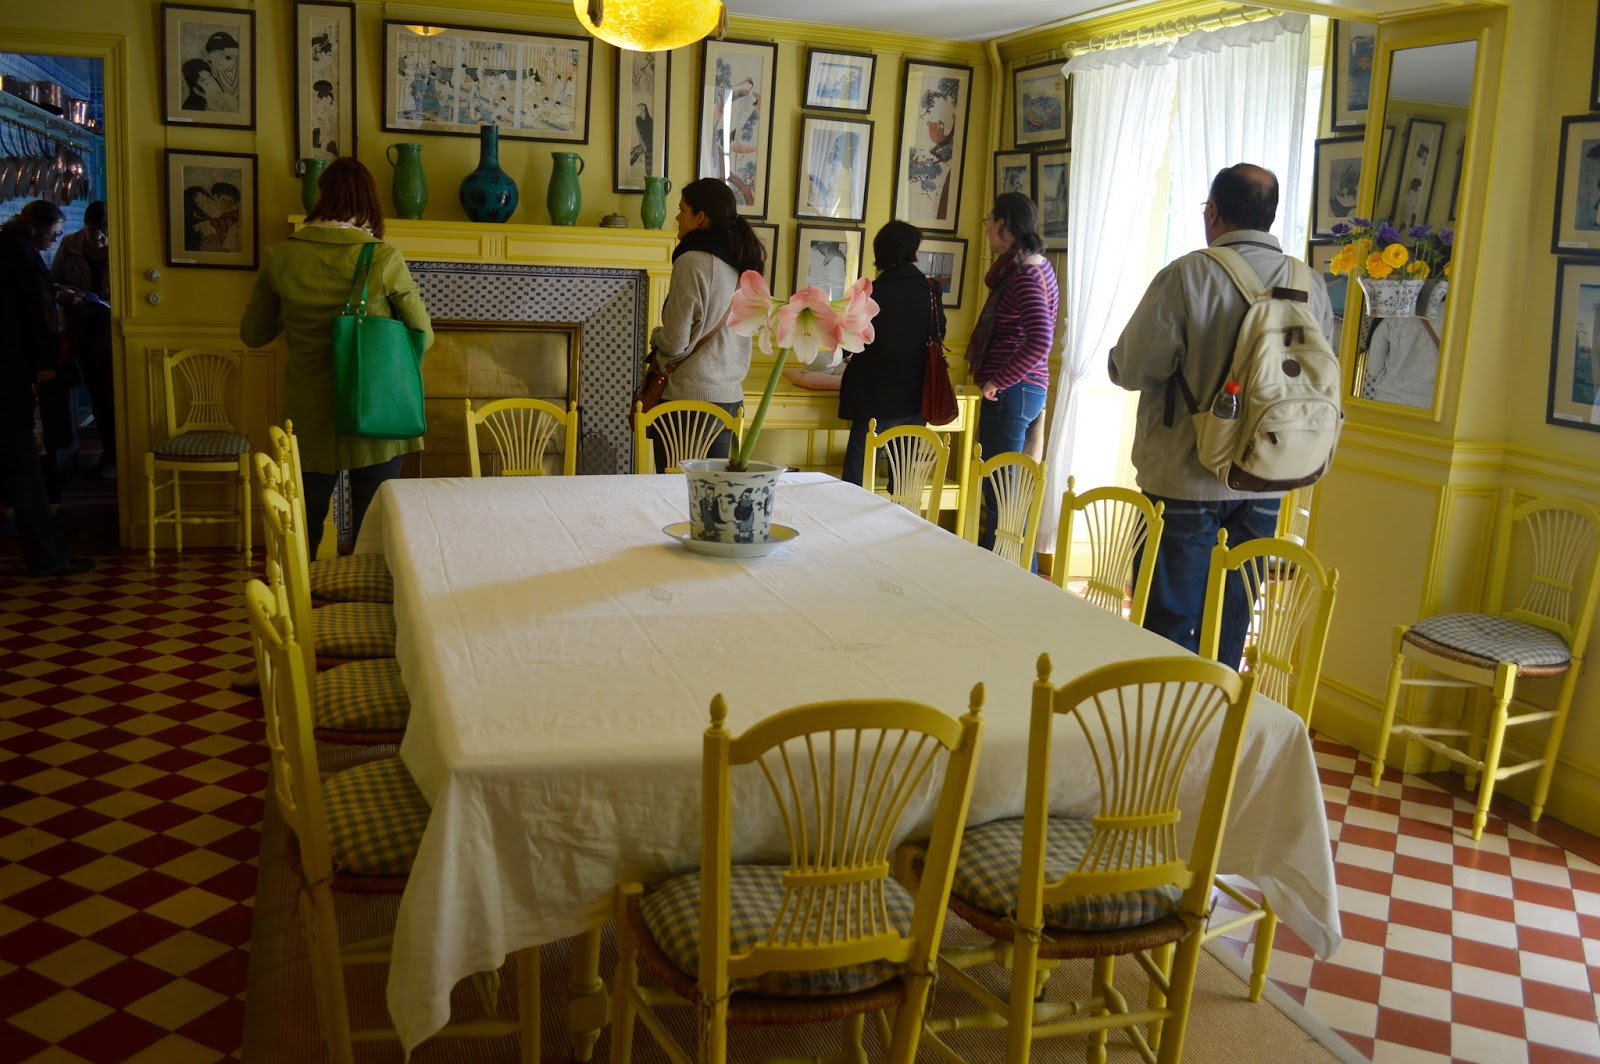 The Dining Room Today